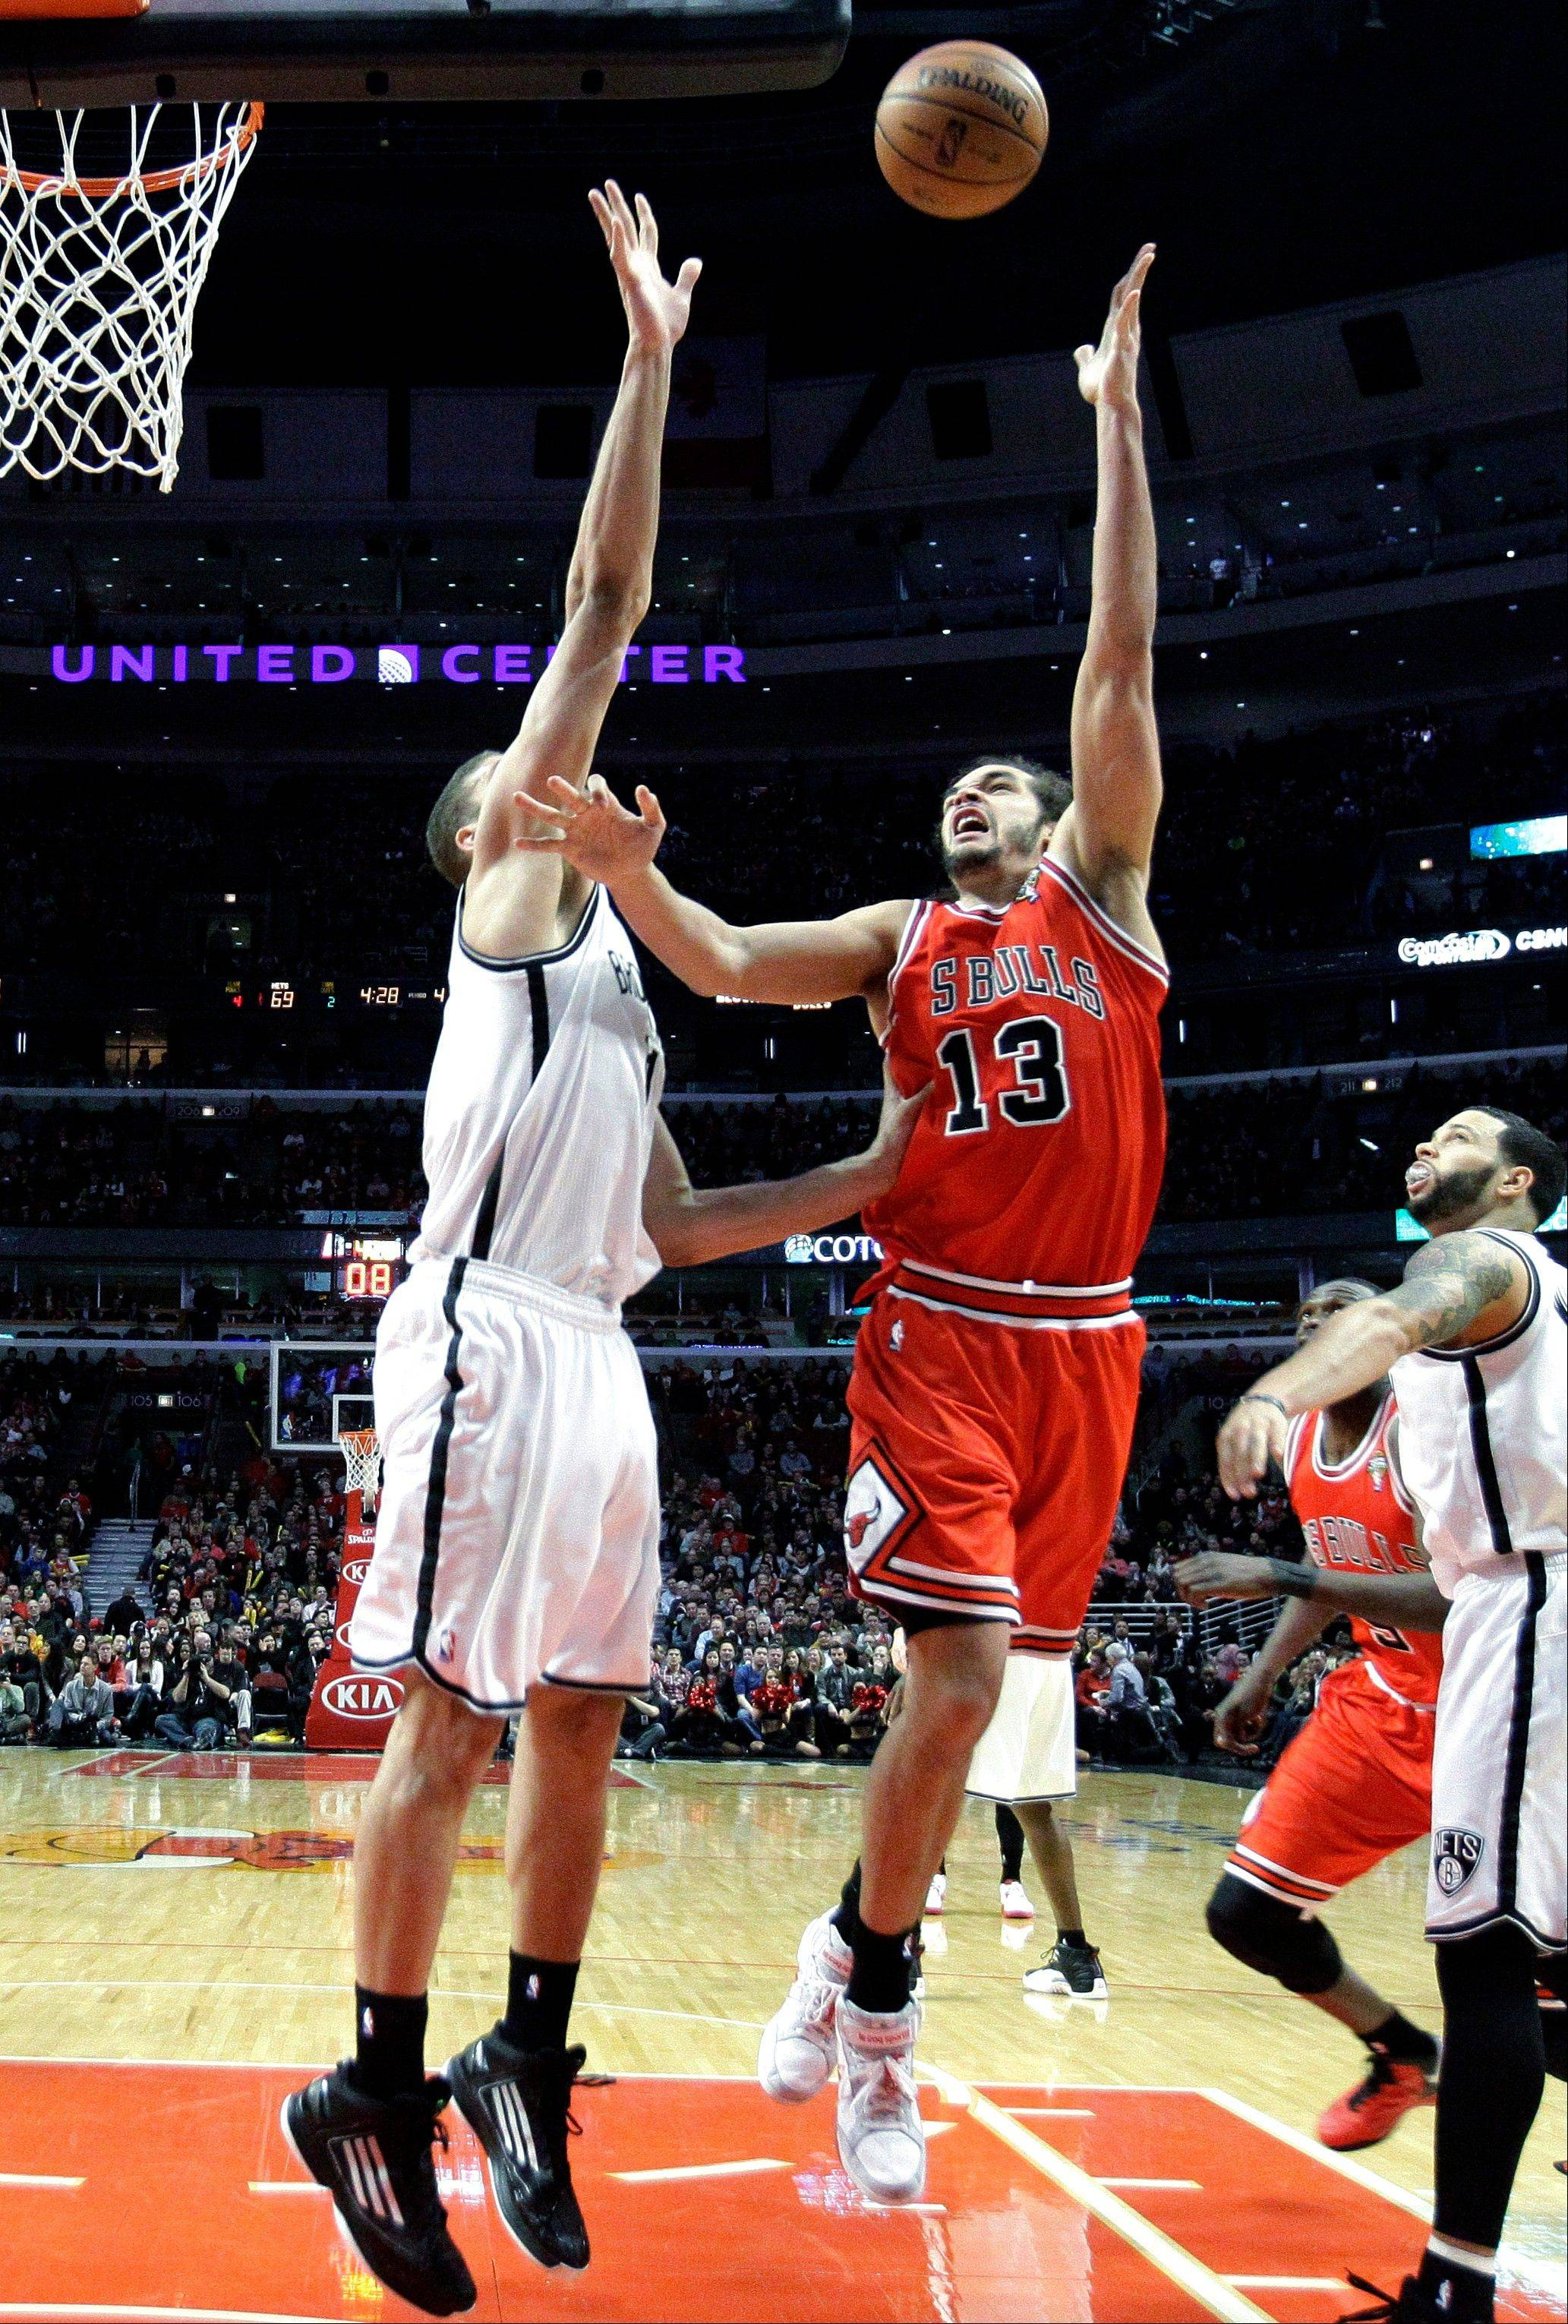 Joakim Noah, right, shoots over Brooklyn Nets center Brook Lopez during the second half Saturday at the United Center. Noah has played 86 minutes in the Bulls' last two games, and the team has another contest Sunday.